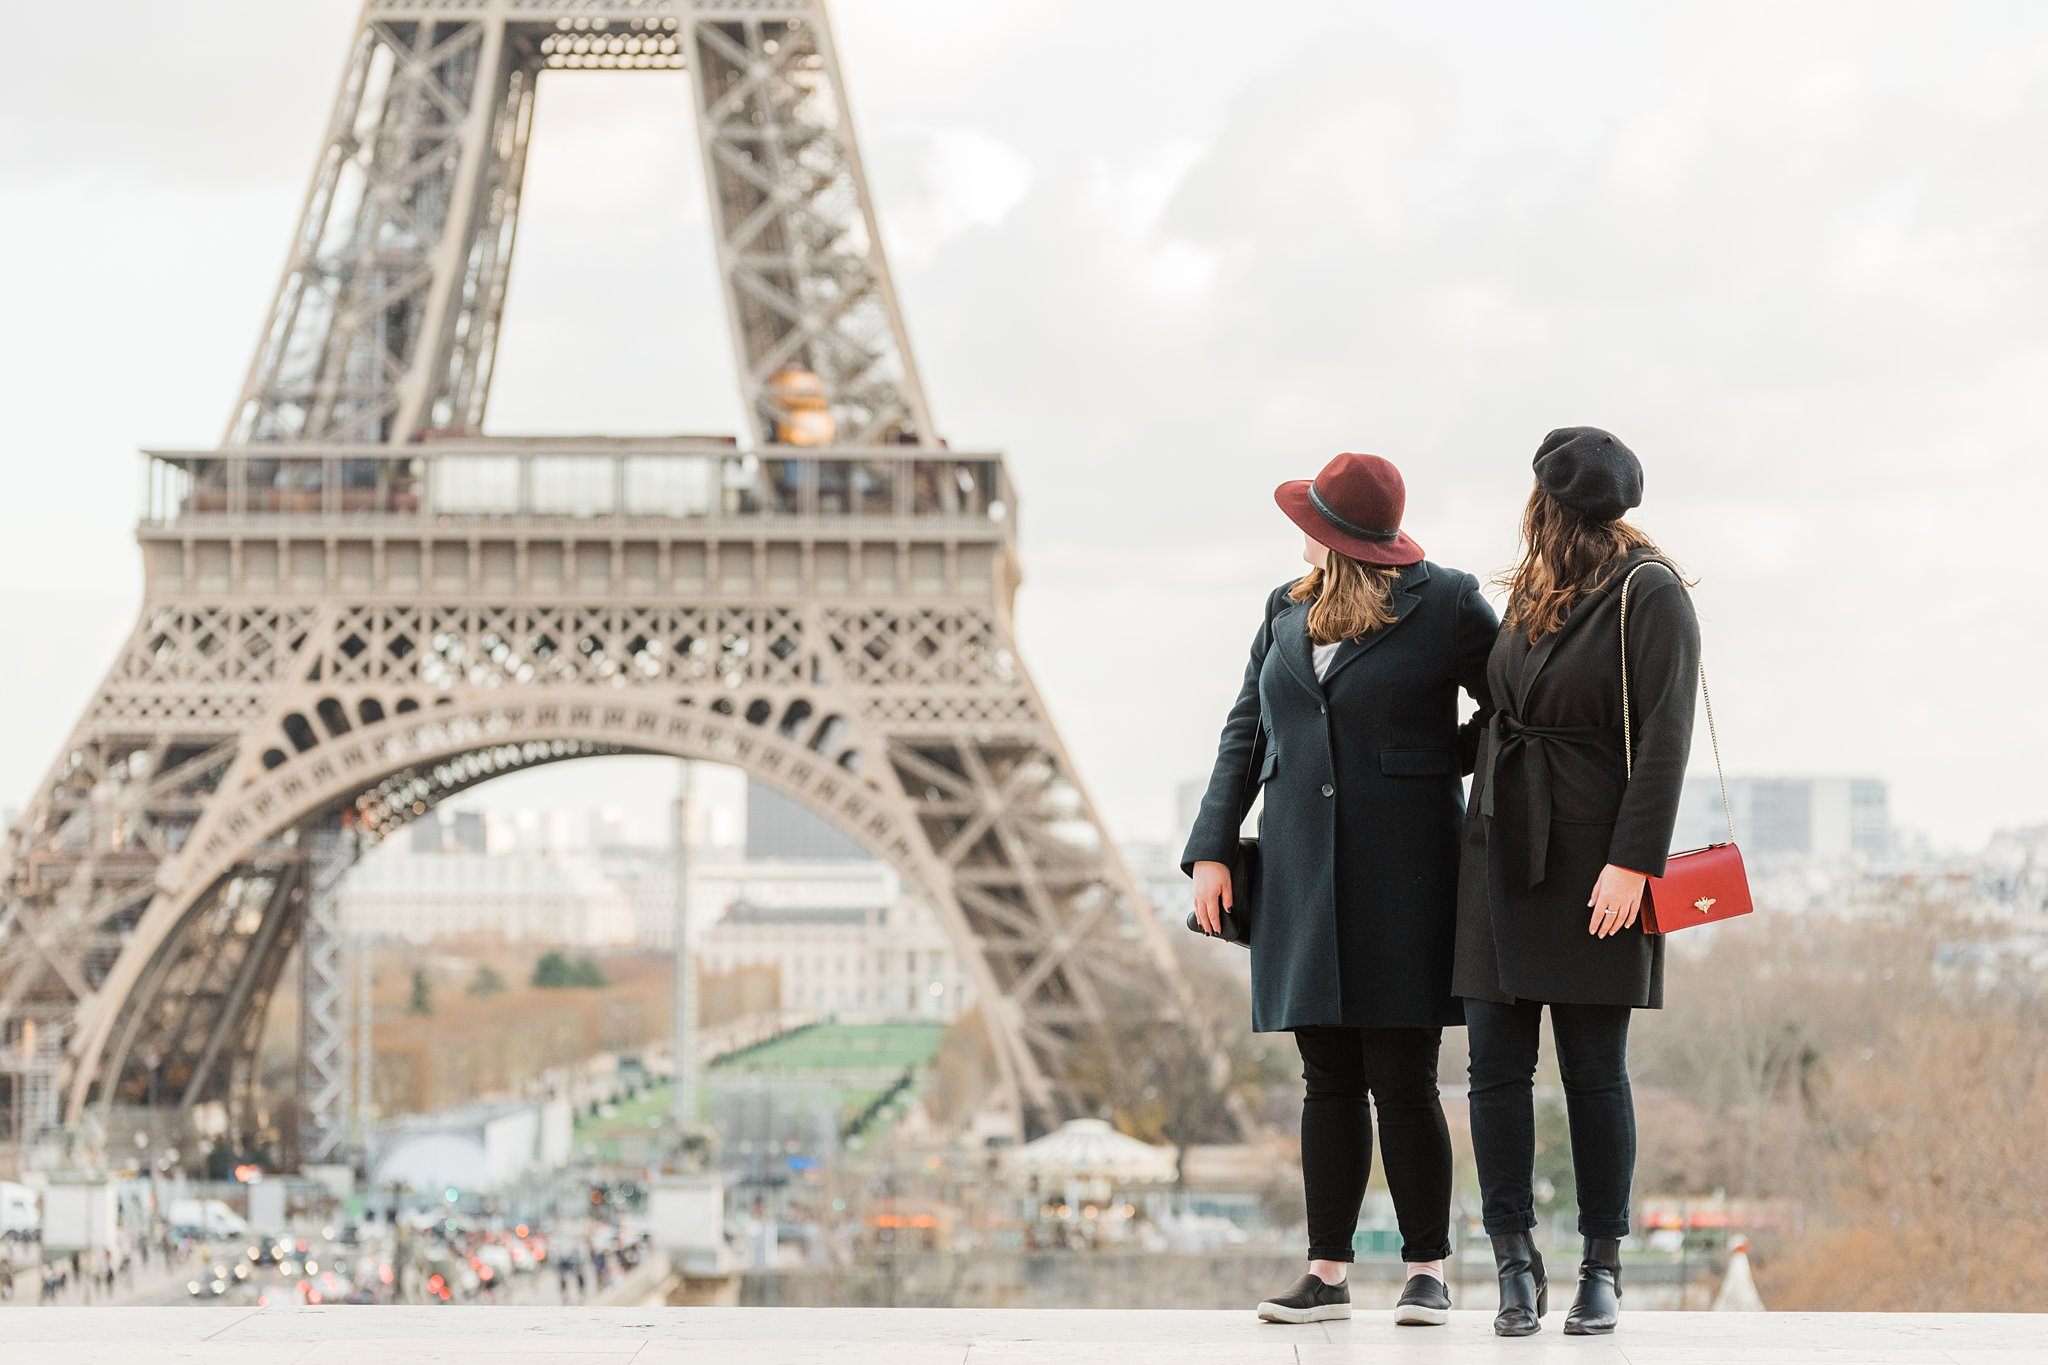 Two sisters in hats looking at the eiffel tower on a winter photo shoot in Paris, as a study abroad activity and Christmas gift